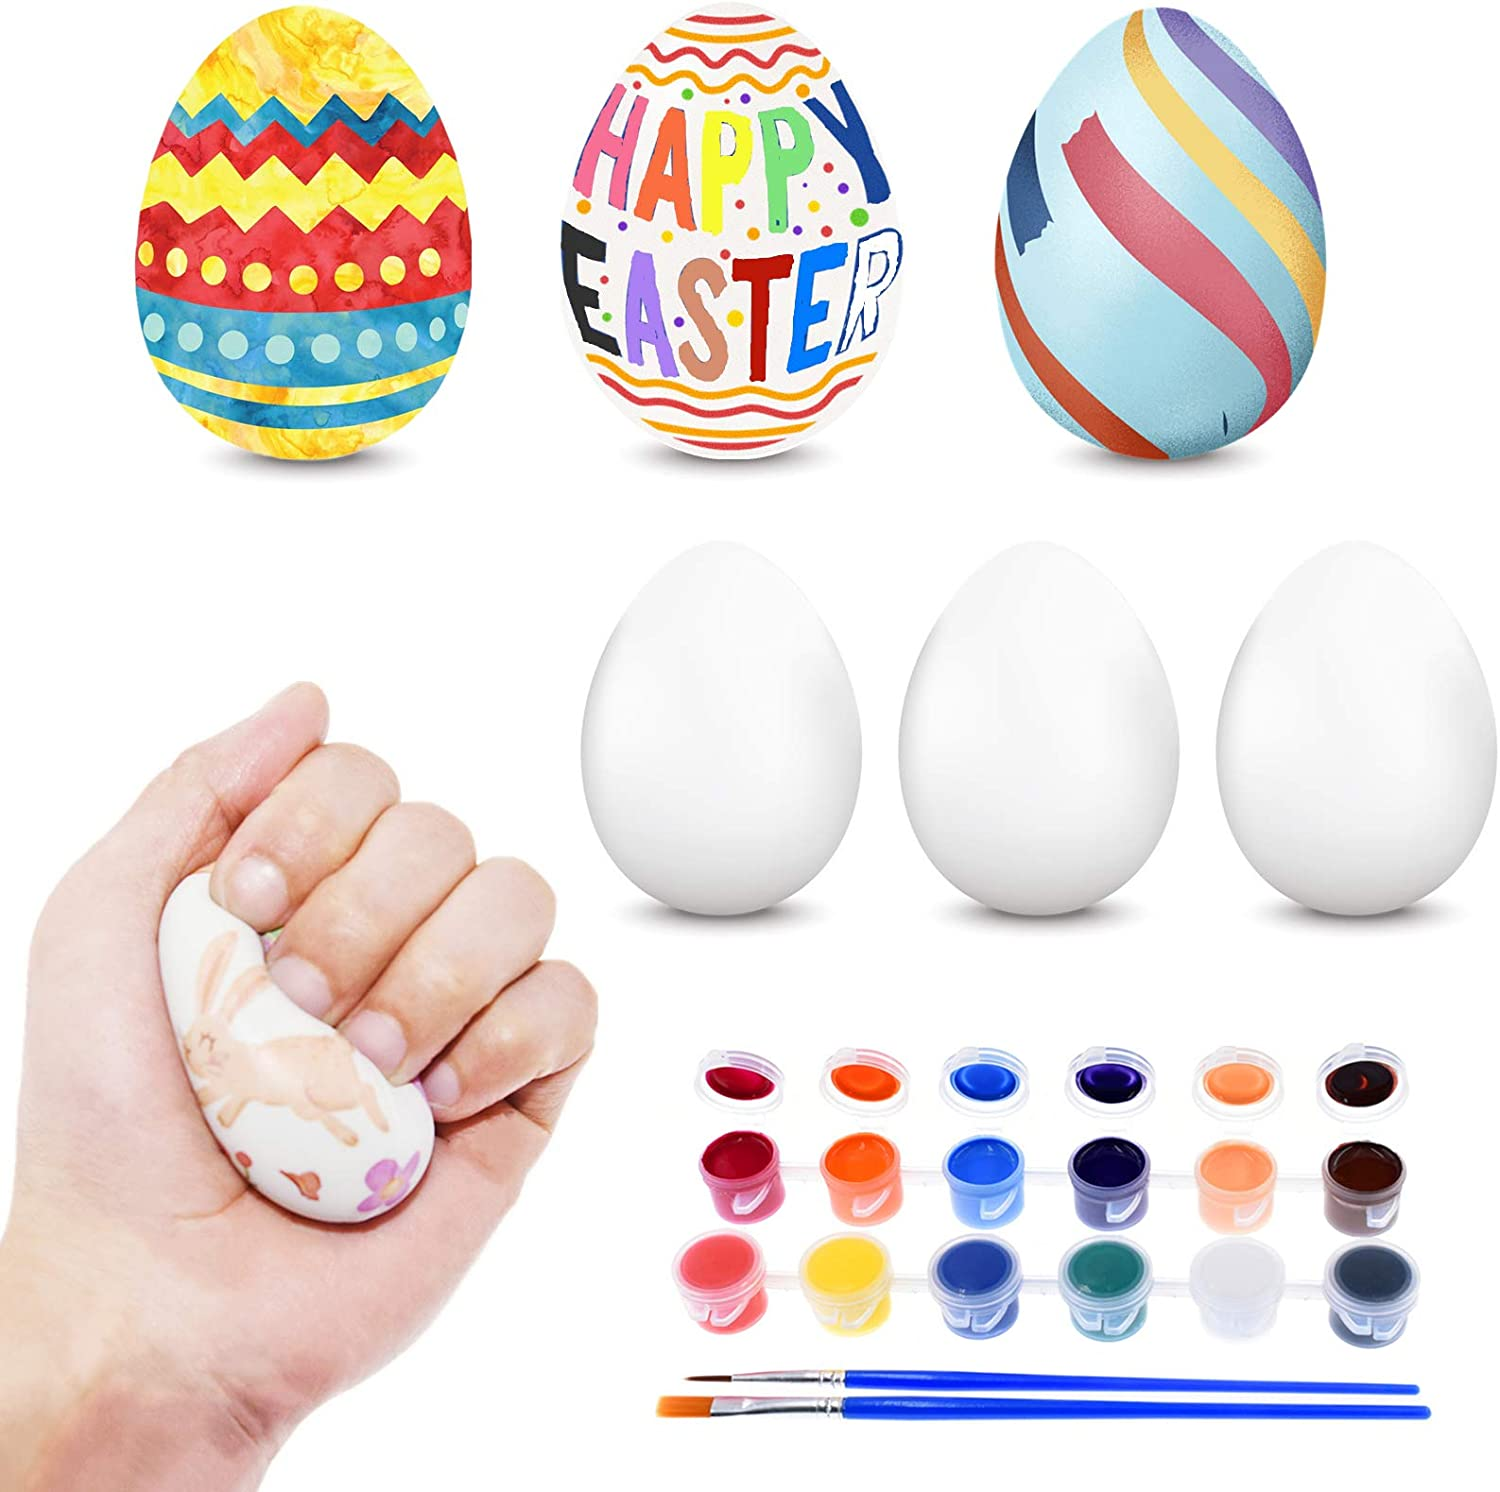 EXRIZU 6 Pack Easter Eggs Crafts Paint Squishy Eggs DIY Arts and Crafts Slow Rising Squishies Toys for Kids Boys Girls Easter Basket Stuffers Gifts Party Favors